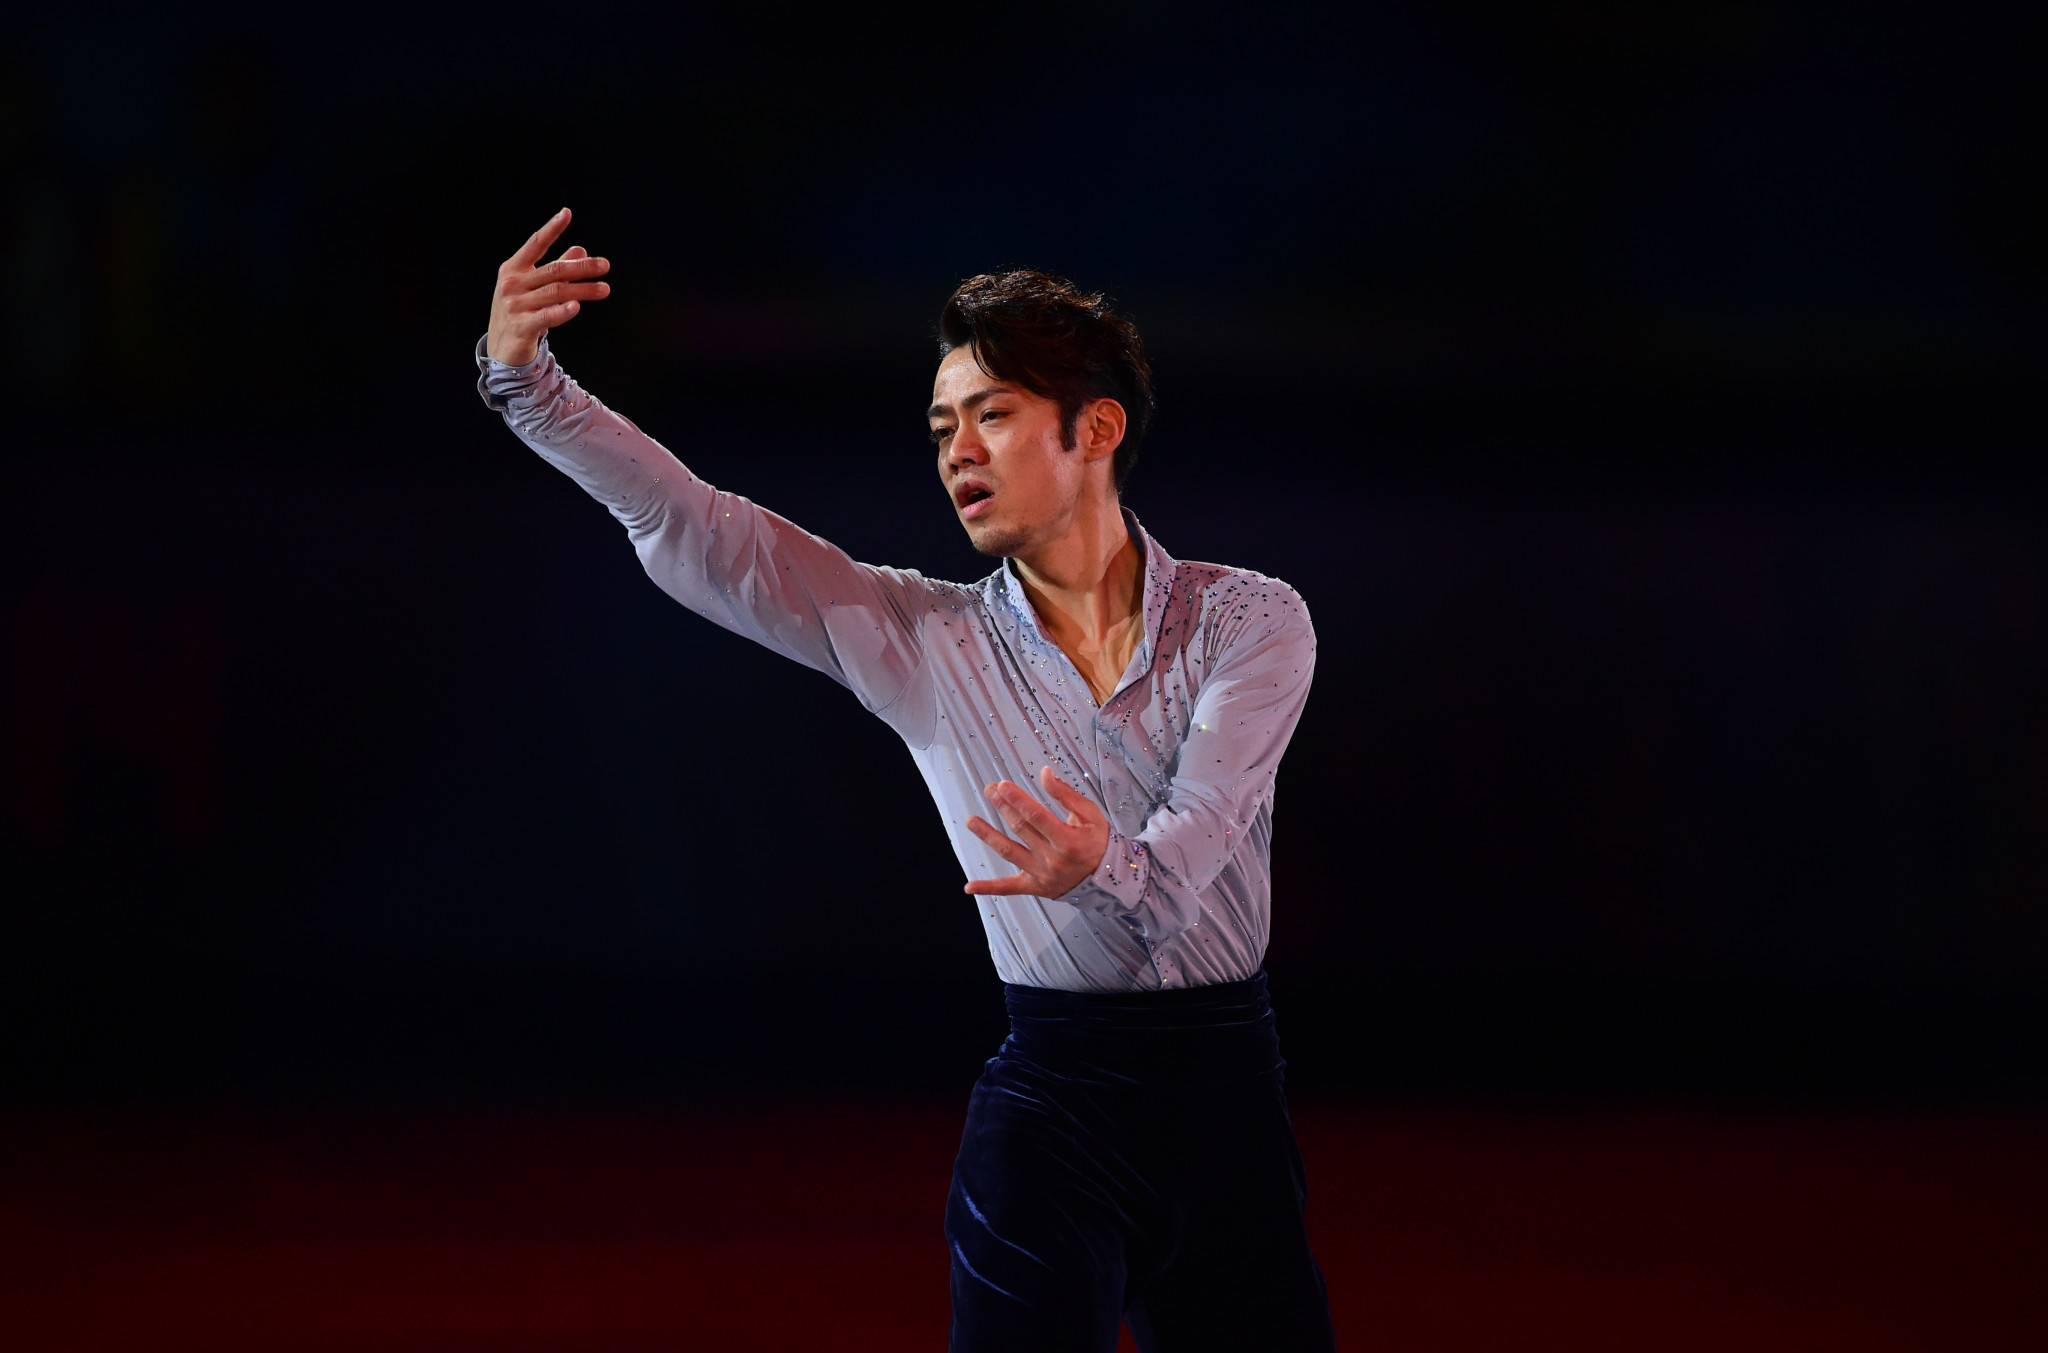 Japanese figure skater Daisuke Takahashi performing at the Sochi 2014 Winter Olympics before he retired ©Getty Images